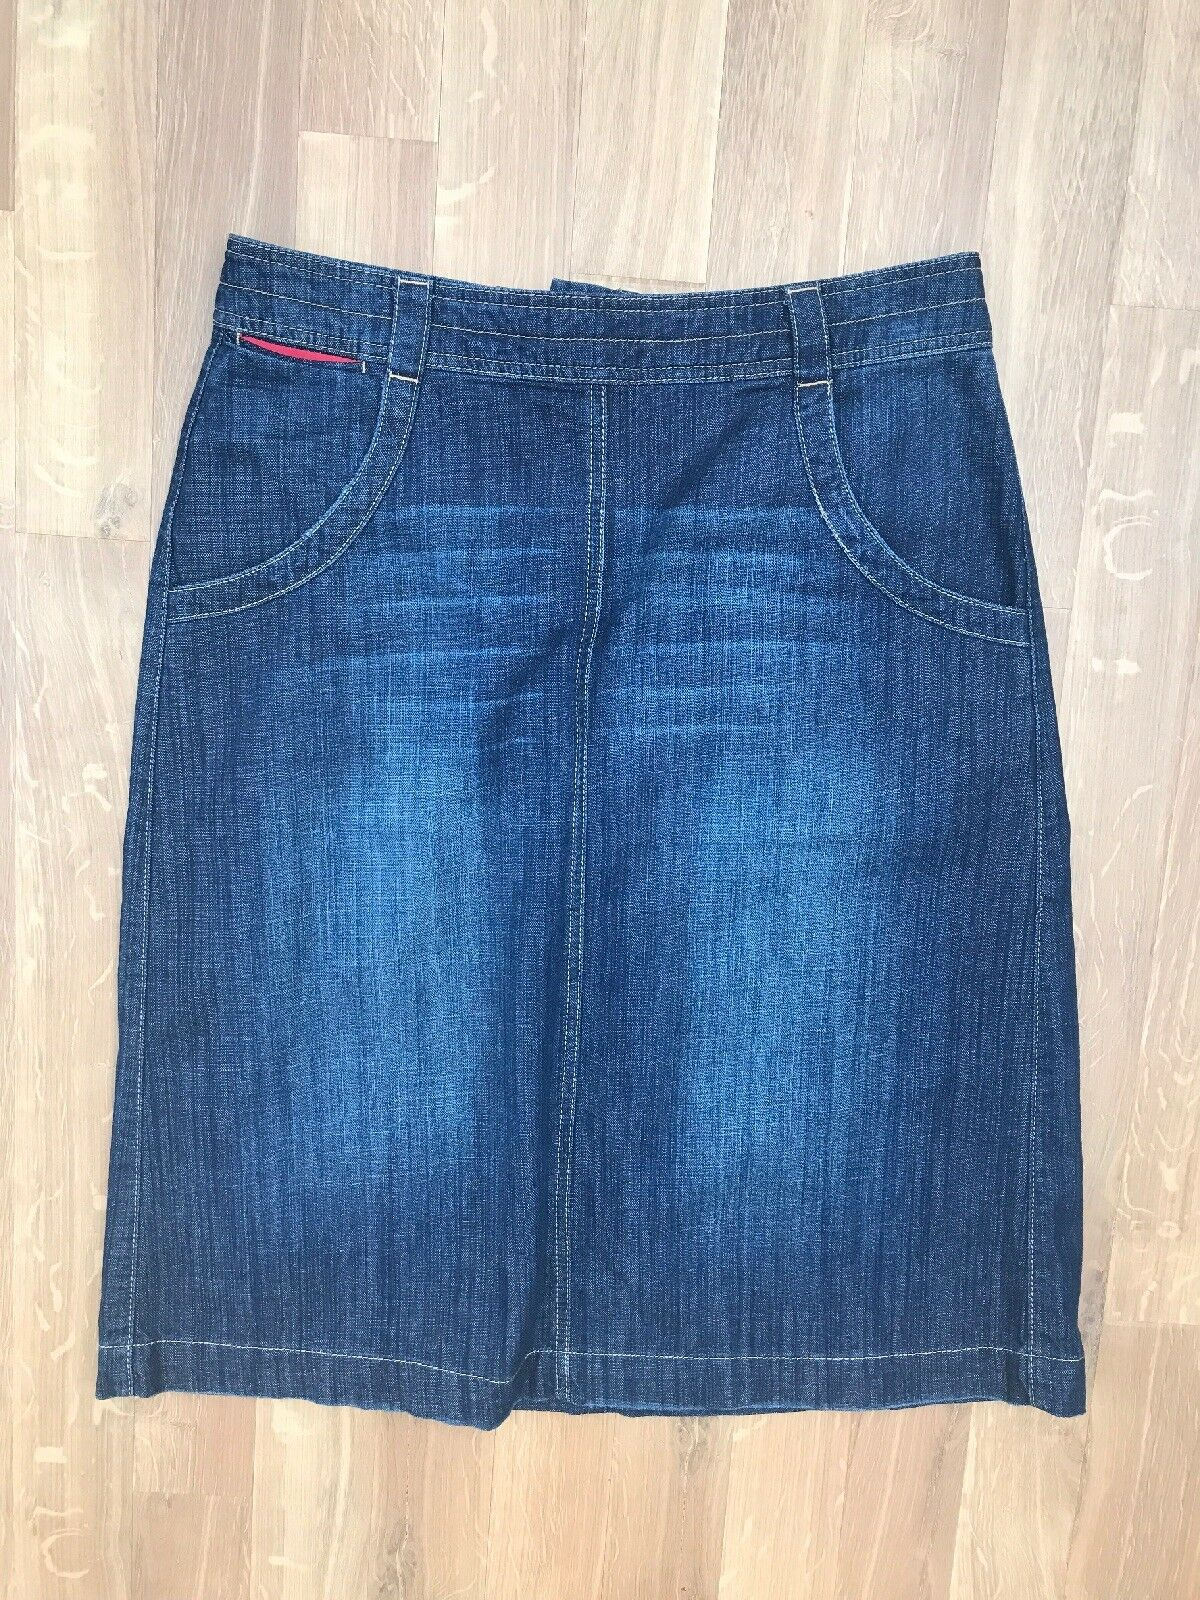 White Stuff Denim Skirt Size 12 bluee Navy Cotton